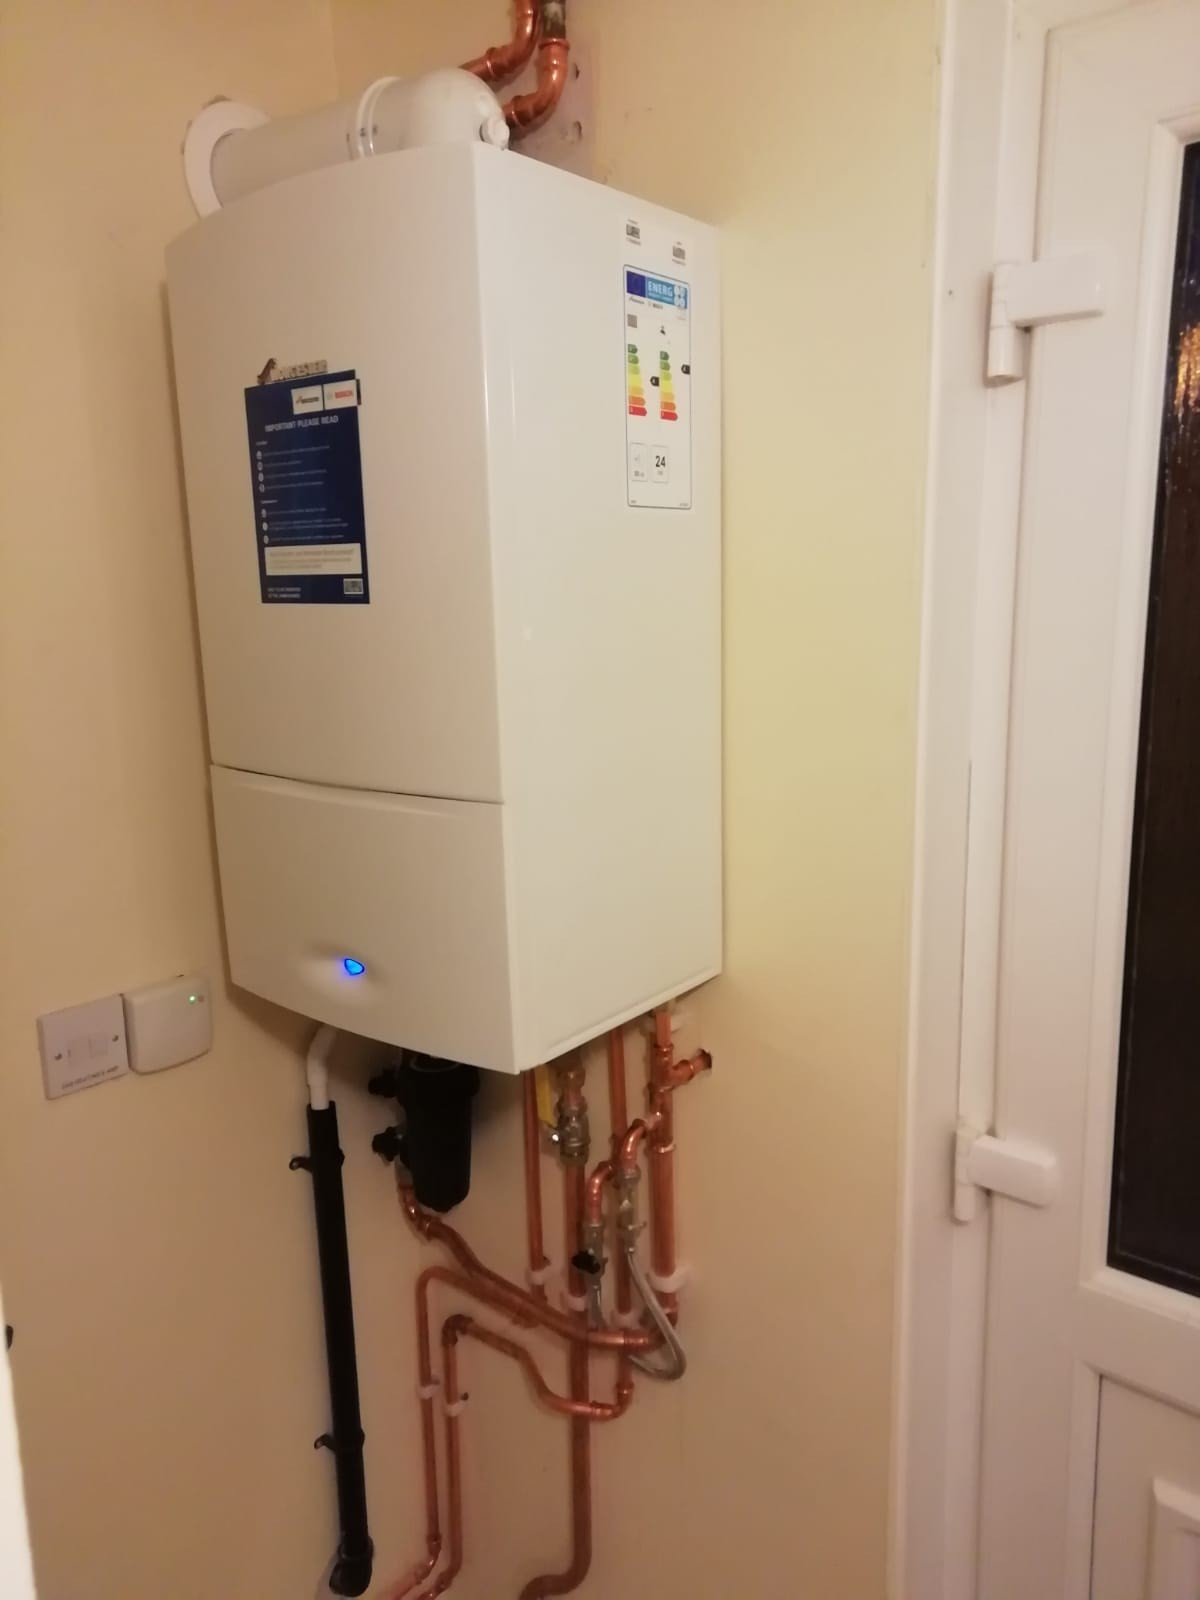 Gas combi installation